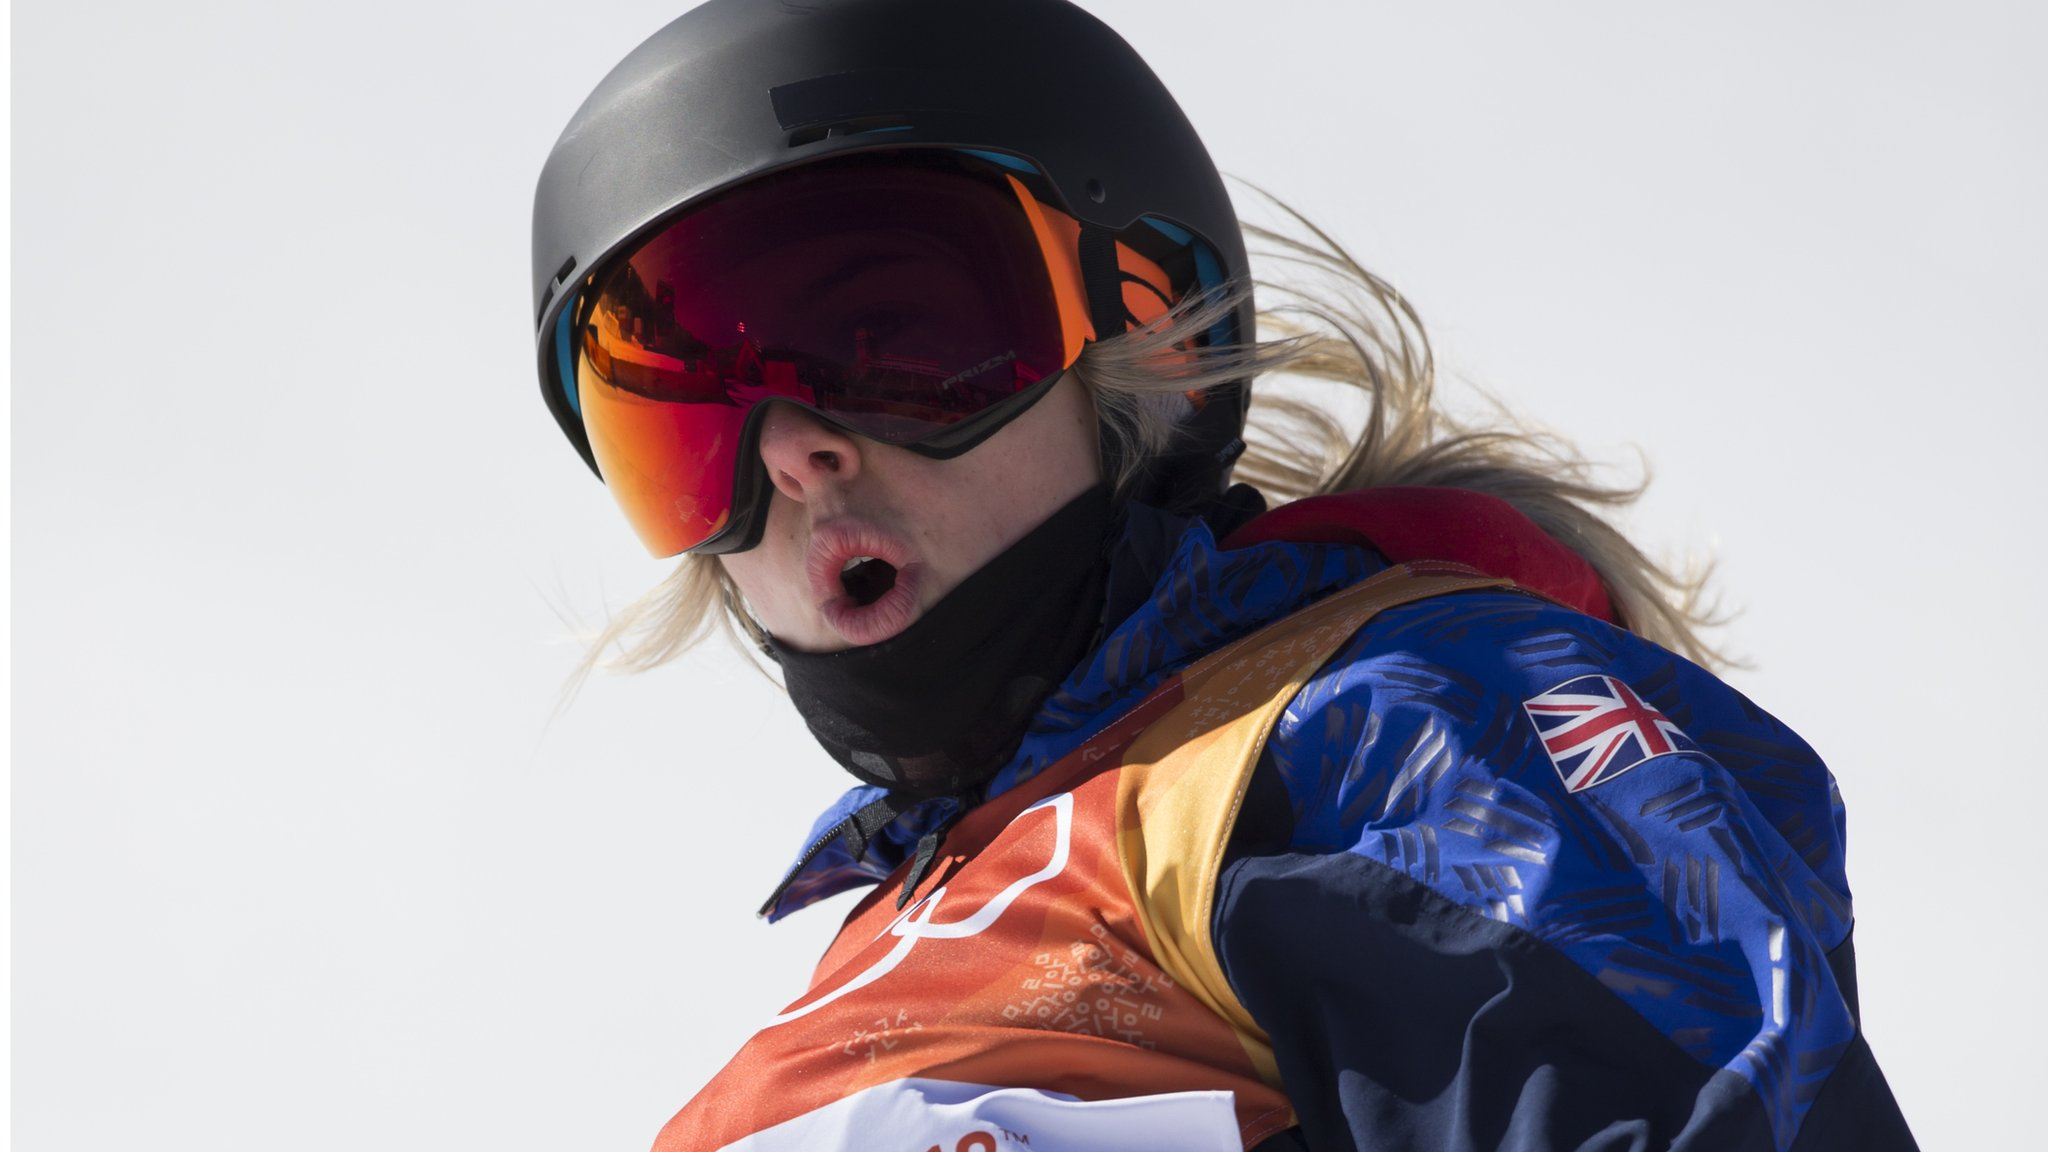 Katie Summerhayes: British freestyle skier ruptures knee ligament for third time | BBC